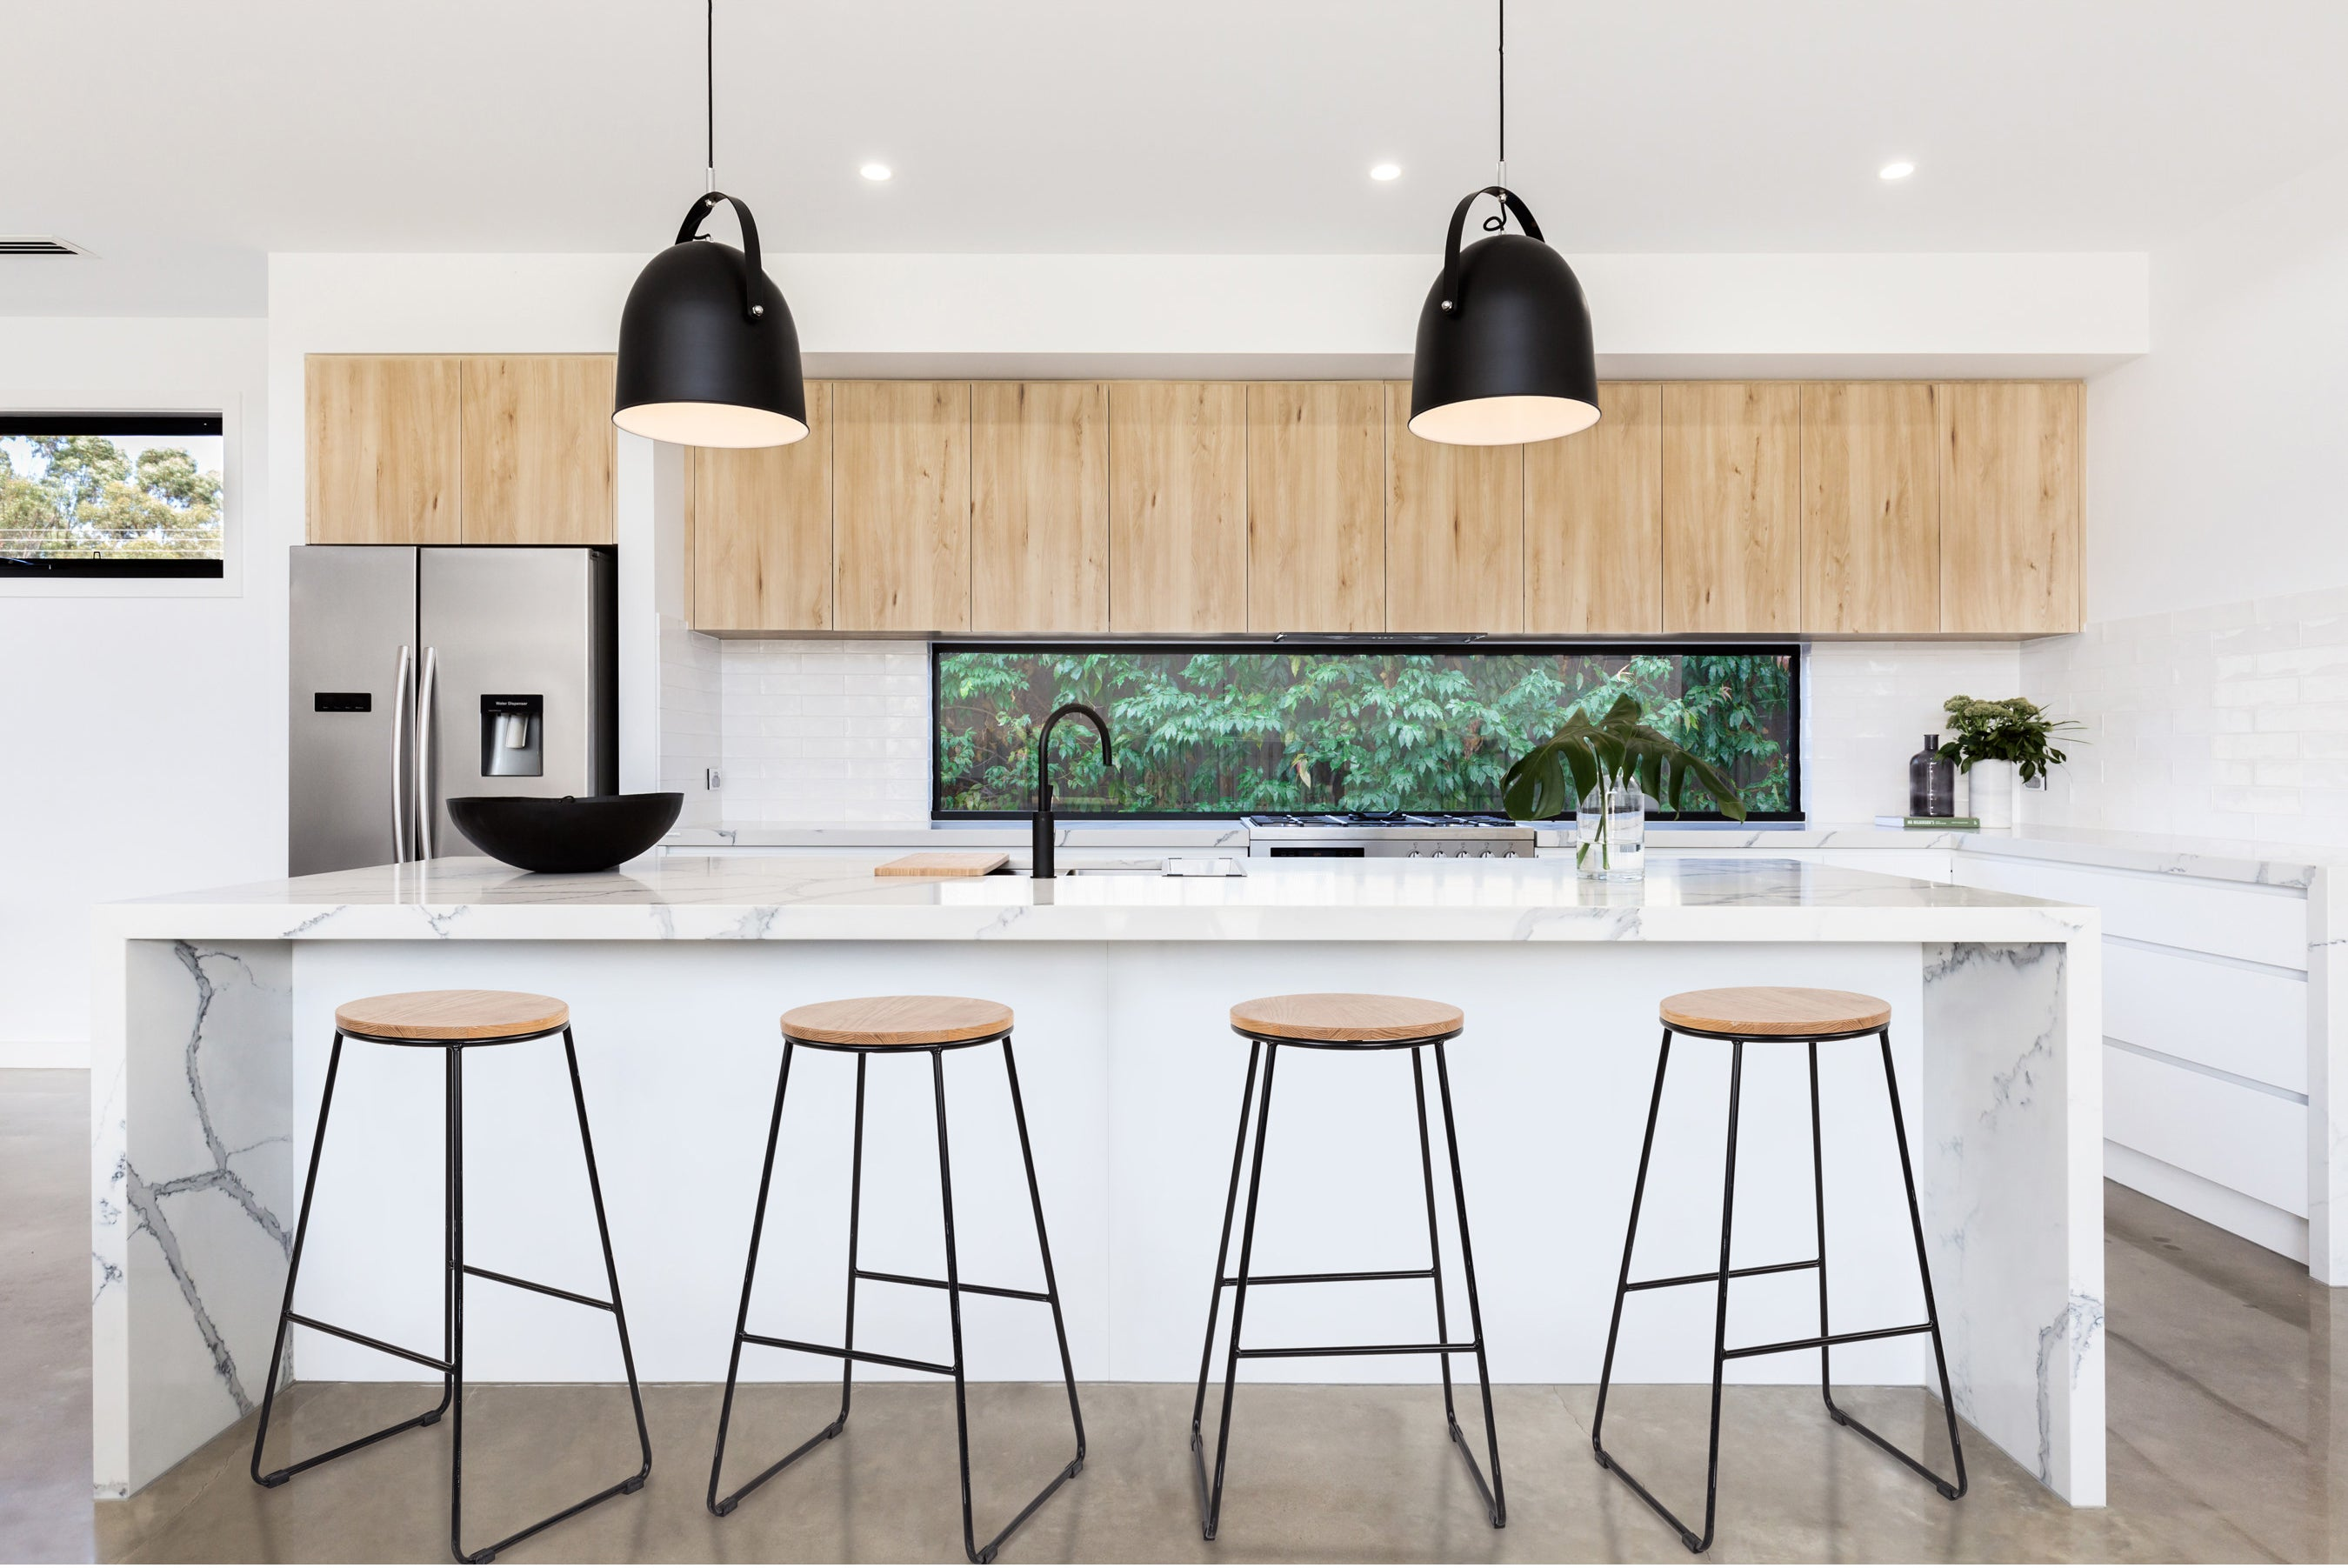 the four stools with a black metal bottom and round wood top displayed in a kitchen